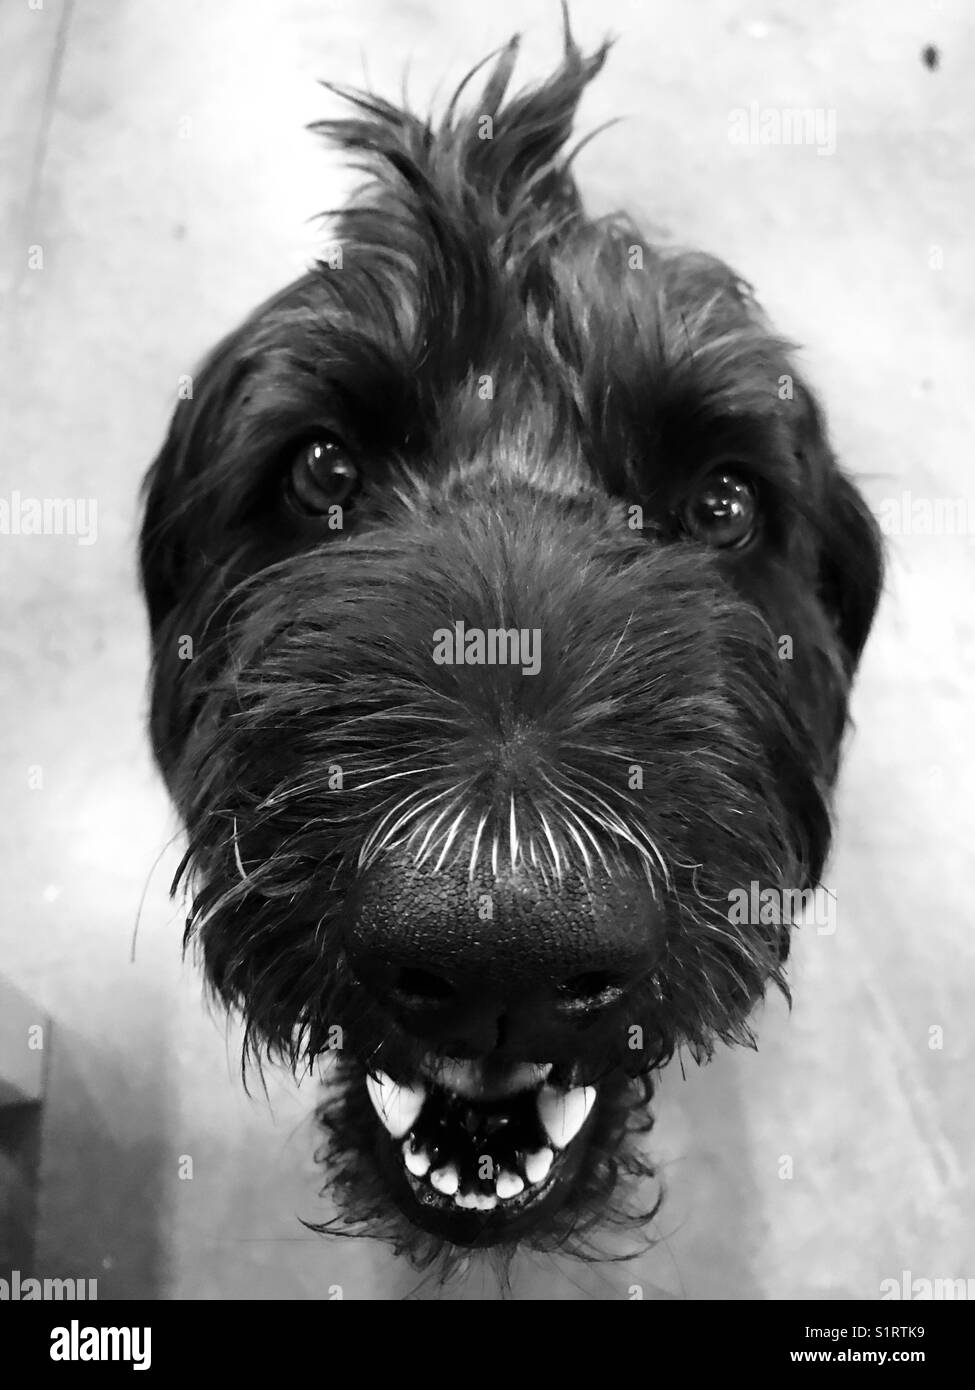 A black labradoodle dog looking at the camera. - Stock Image